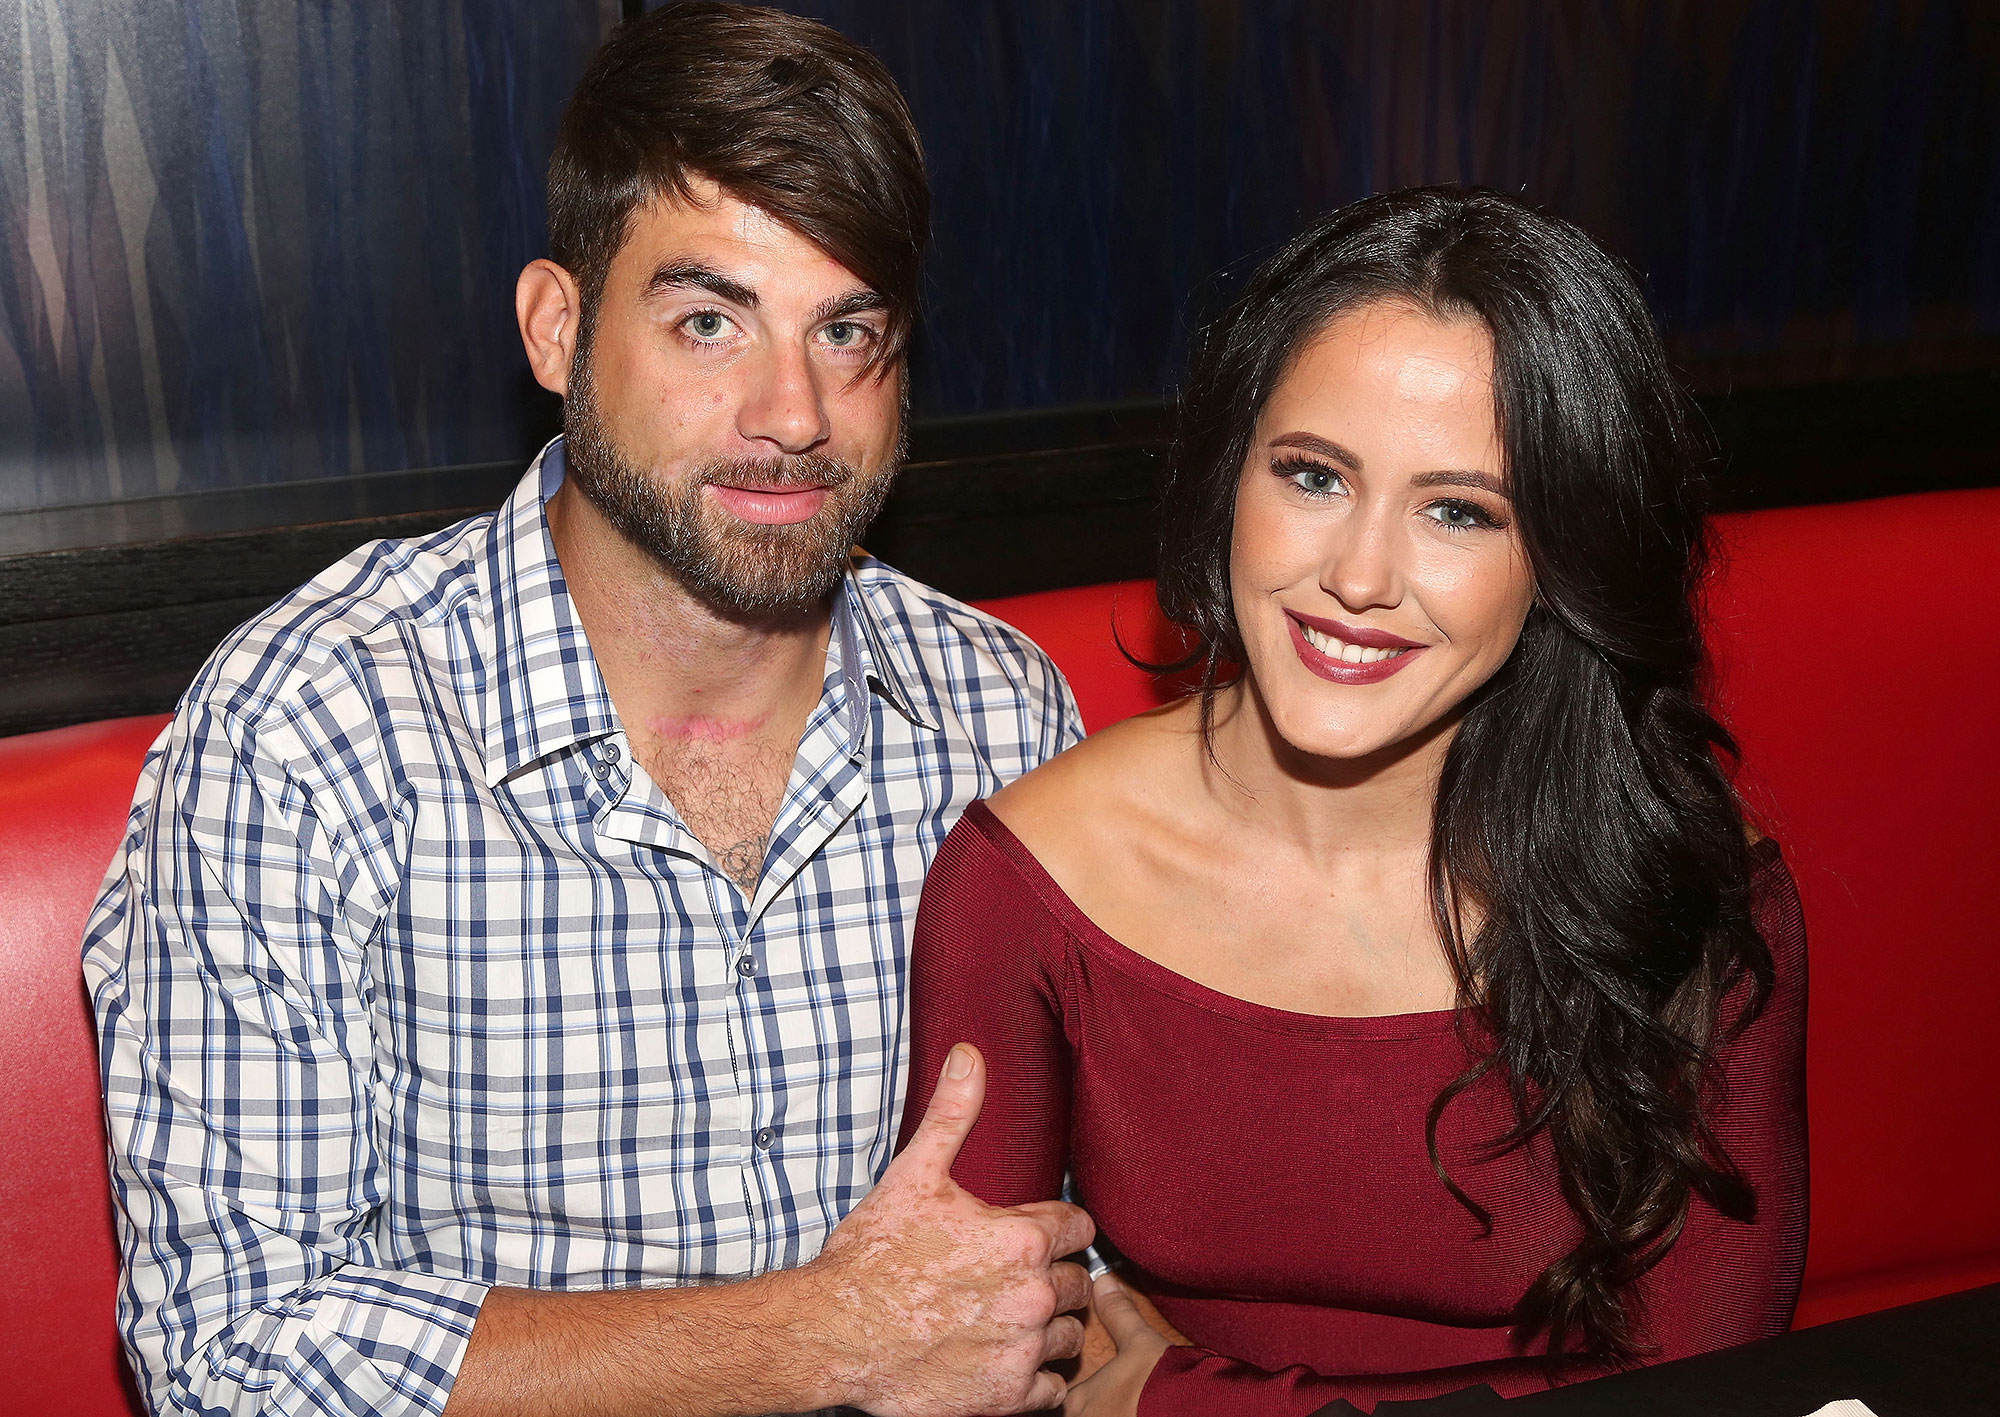 jenelle-evans-addresses-false-reports-about-david-eason-killing-her-dog-while-he-might-go-to-jail